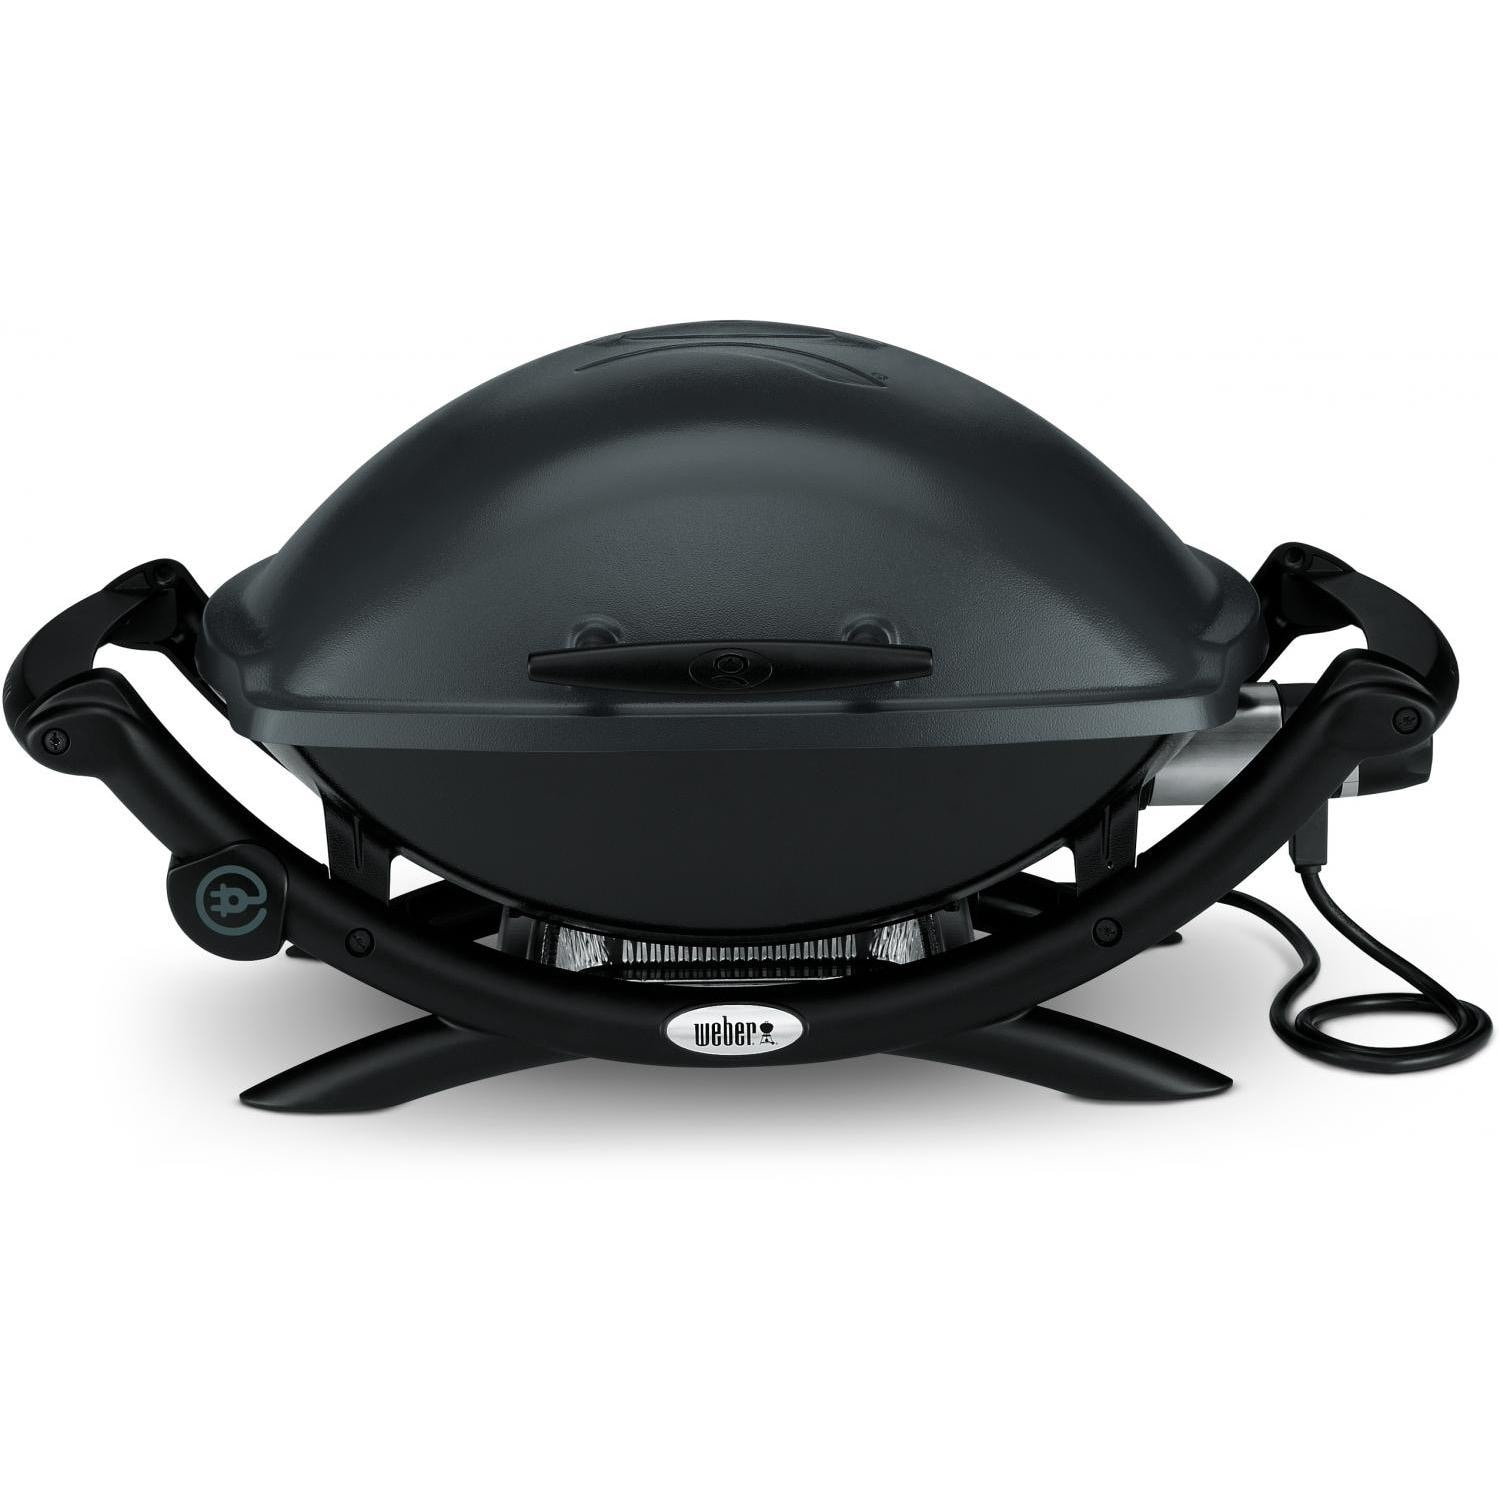 Weber Q 2400 Portable Electric Grill - Dark Gray - 55020001 There are various scuffs and scratches on the and the burner pan. The burner pan also has a few dents. Damage listed does not hinder use. (Stock# 127774-H)